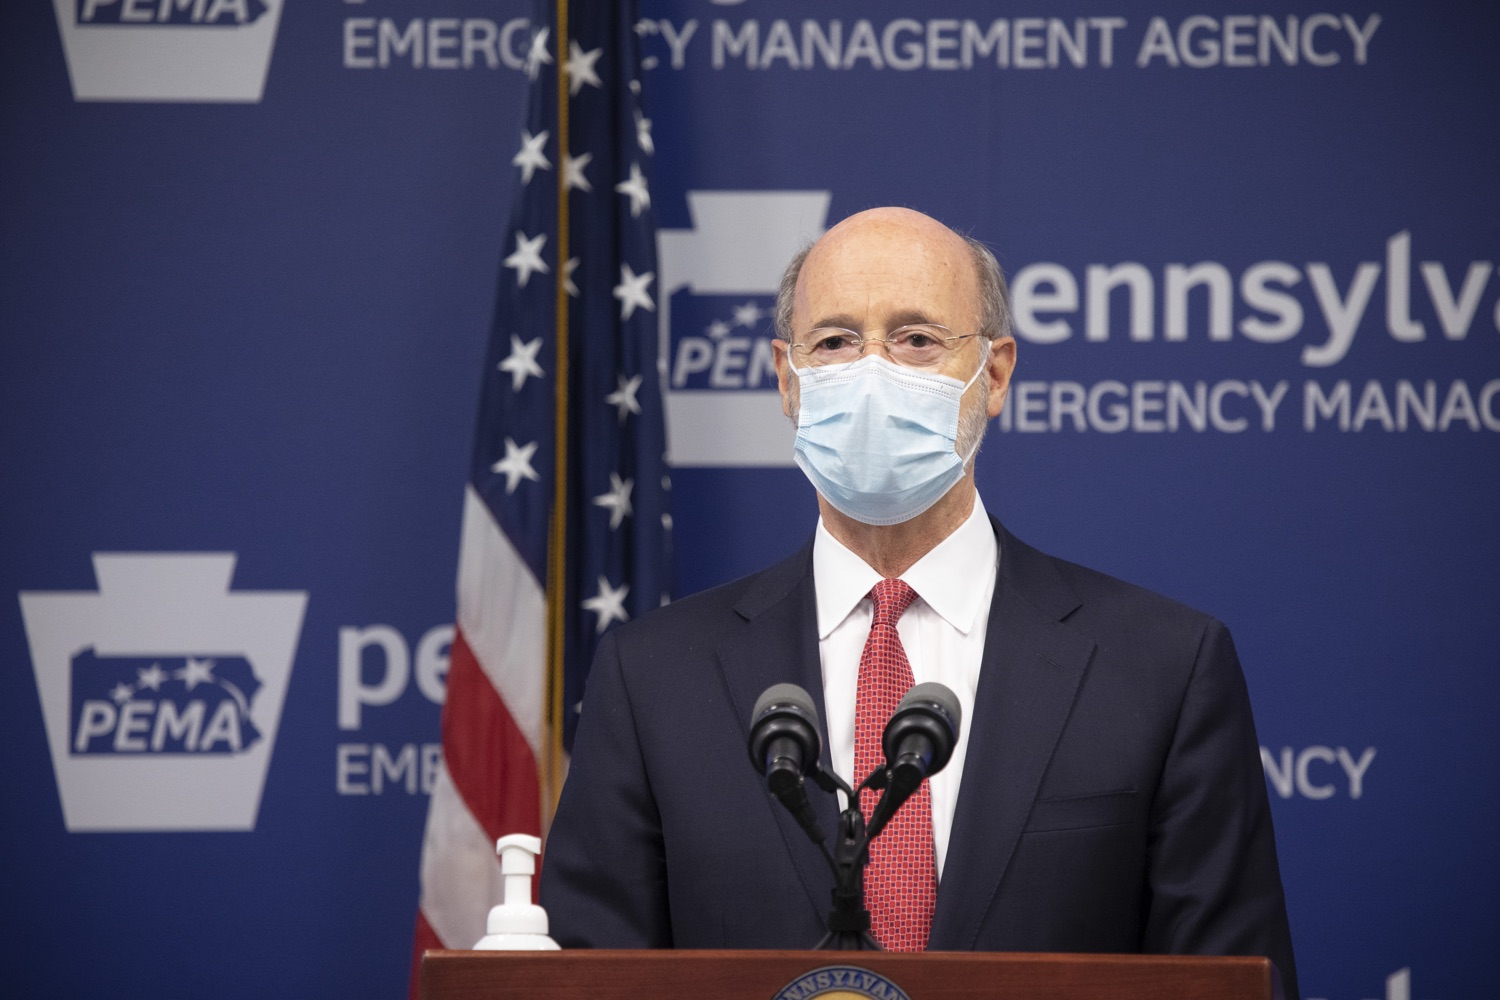 "<a href=""https://filesource.wostreaming.net/commonwealthofpa/photo/18405_gov_covidUpdate_dz_014.jpg"" target=""_blank"">⇣ Download Photo<br></a>Pennsylvania Governor Tom Wolf answers questions from the press.  With new modeling projecting 22,000 new COVID-19 cases per day in Pennsylvania in December, Governor Tom Wolf and Secretary of Health Dr. Rachel Levine today announced new targeted mitigation measures to help stop the spread during this critical time. These include a robust enforcement plan targeted at chronic violators along with an effort to ensure schools are safe and in compliance with COVID safety plans. The administration is also encouraging Pennsylvanians to limit unnecessary travel and stay at home.  Harrisburg, Pa. November 23, 2020"